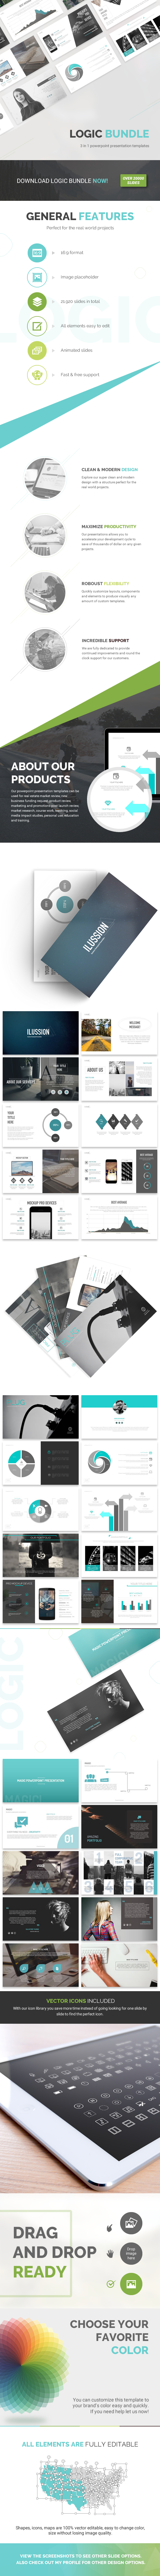 Brand - Multipurpose Powerpoint Template (PowerPoint Templates)